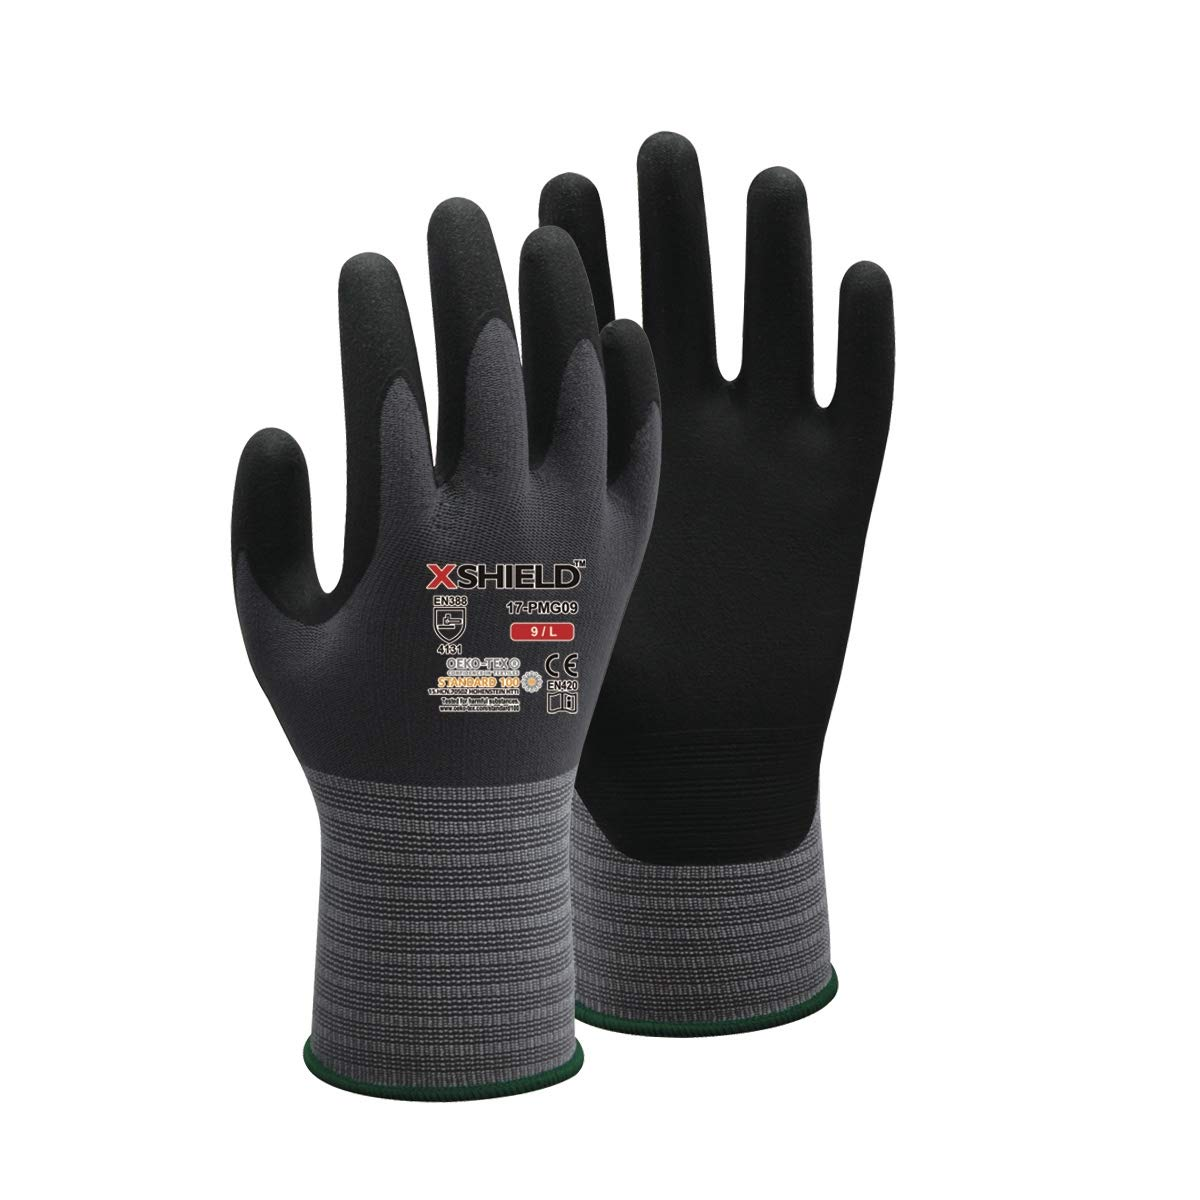 Flock Lined XX-Large Pack of 12 Axle Green Southern Gloves IGN15FL-XXL Nitrile 13 13